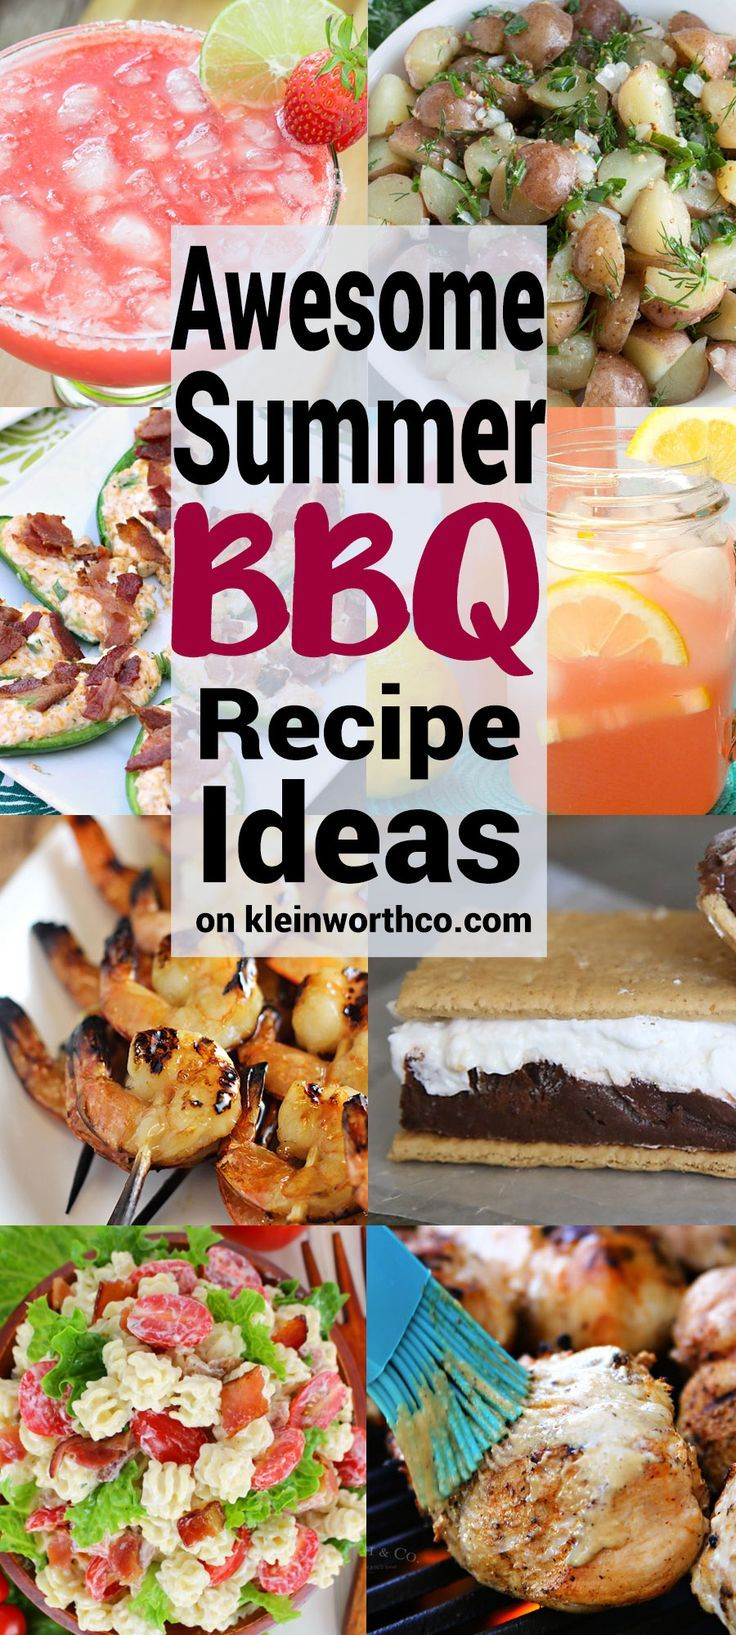 Awesome Summer Bbq Recipe Ideas To Have A Delicious Grill Out These Are The Must Recipes For Your Next Best Hot Cold Party